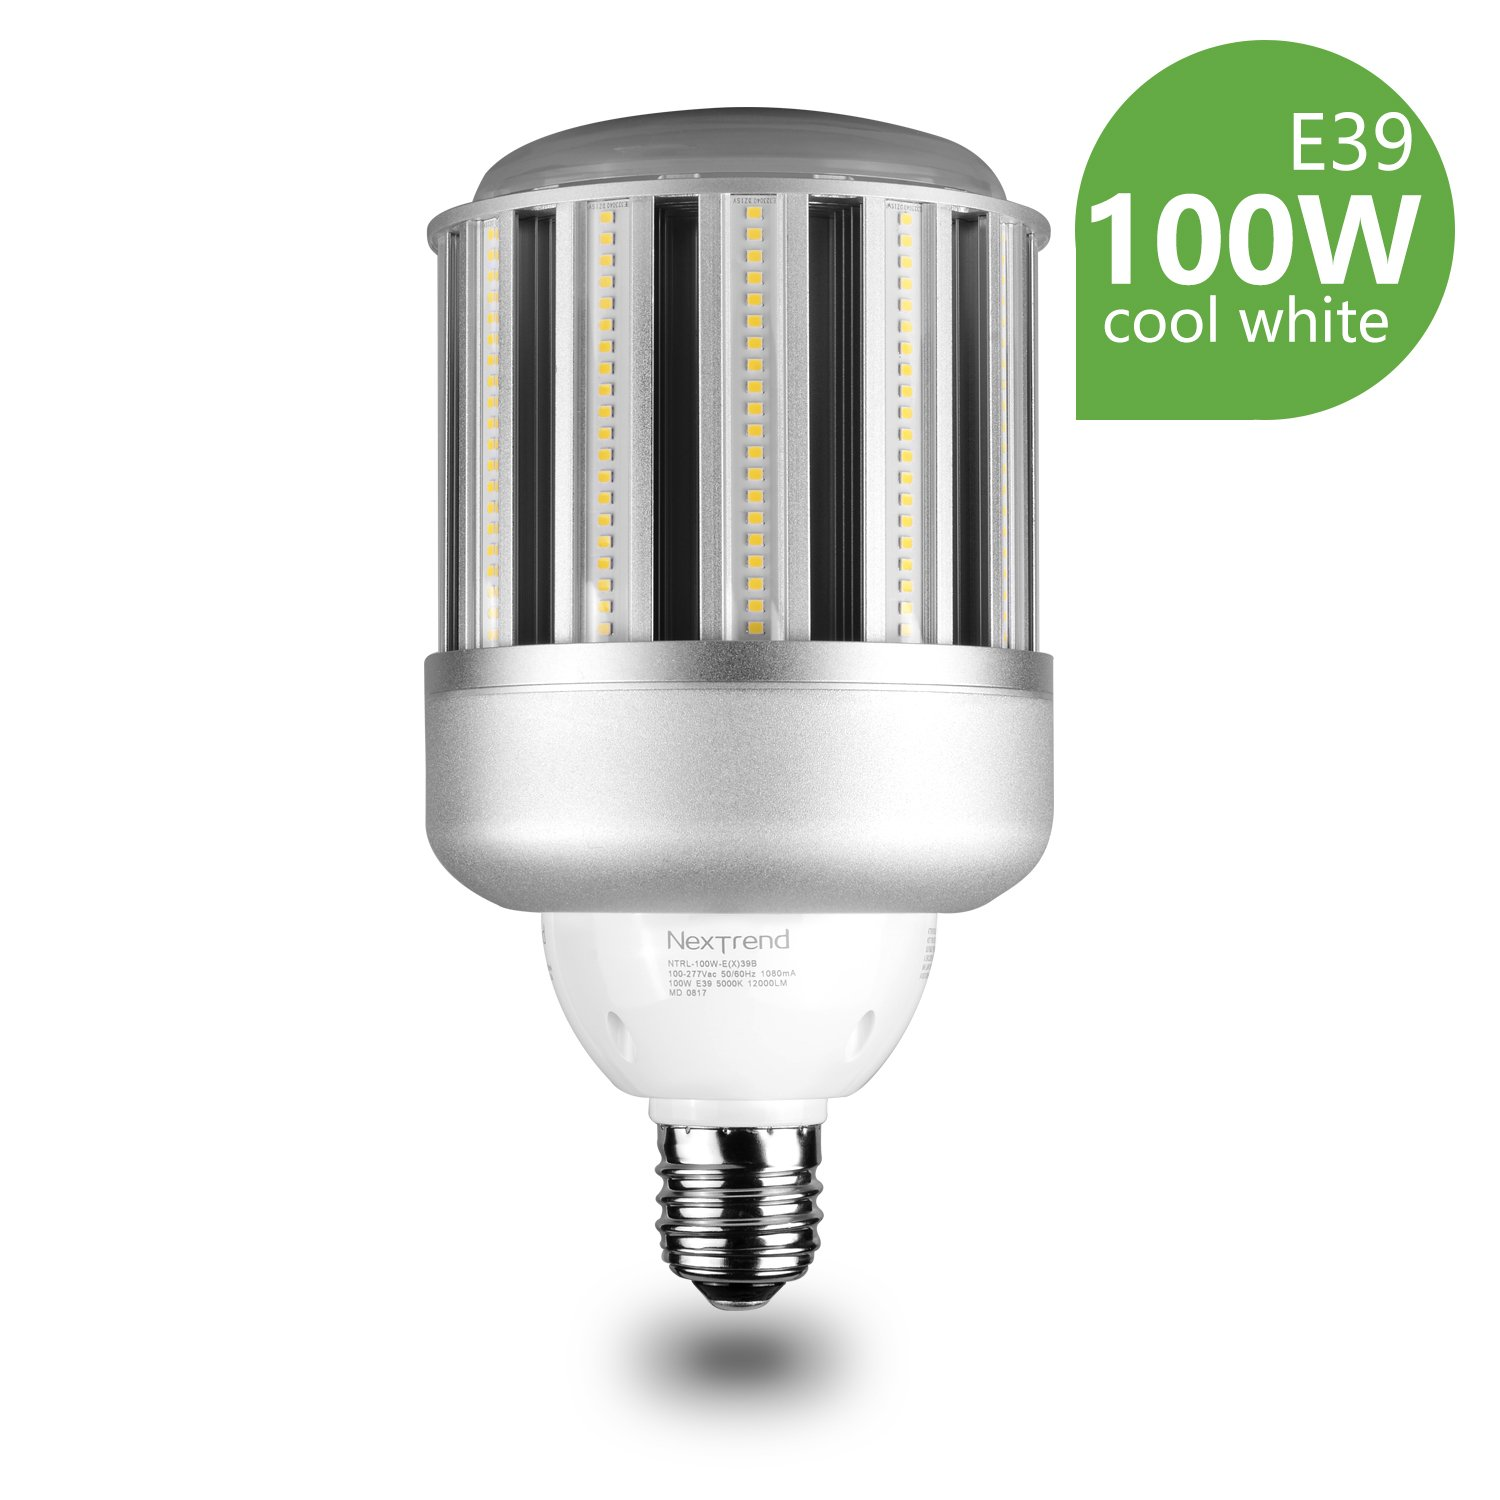 LED Corn Light Bulb, NexTrend 100W Corn Light Bulb for Indoor Outdoor Wide Area, for Home Garage Factory Warehouse High Bay Barn Porch Backyard Garden Street Post Lighting, Cool White by Nextrend